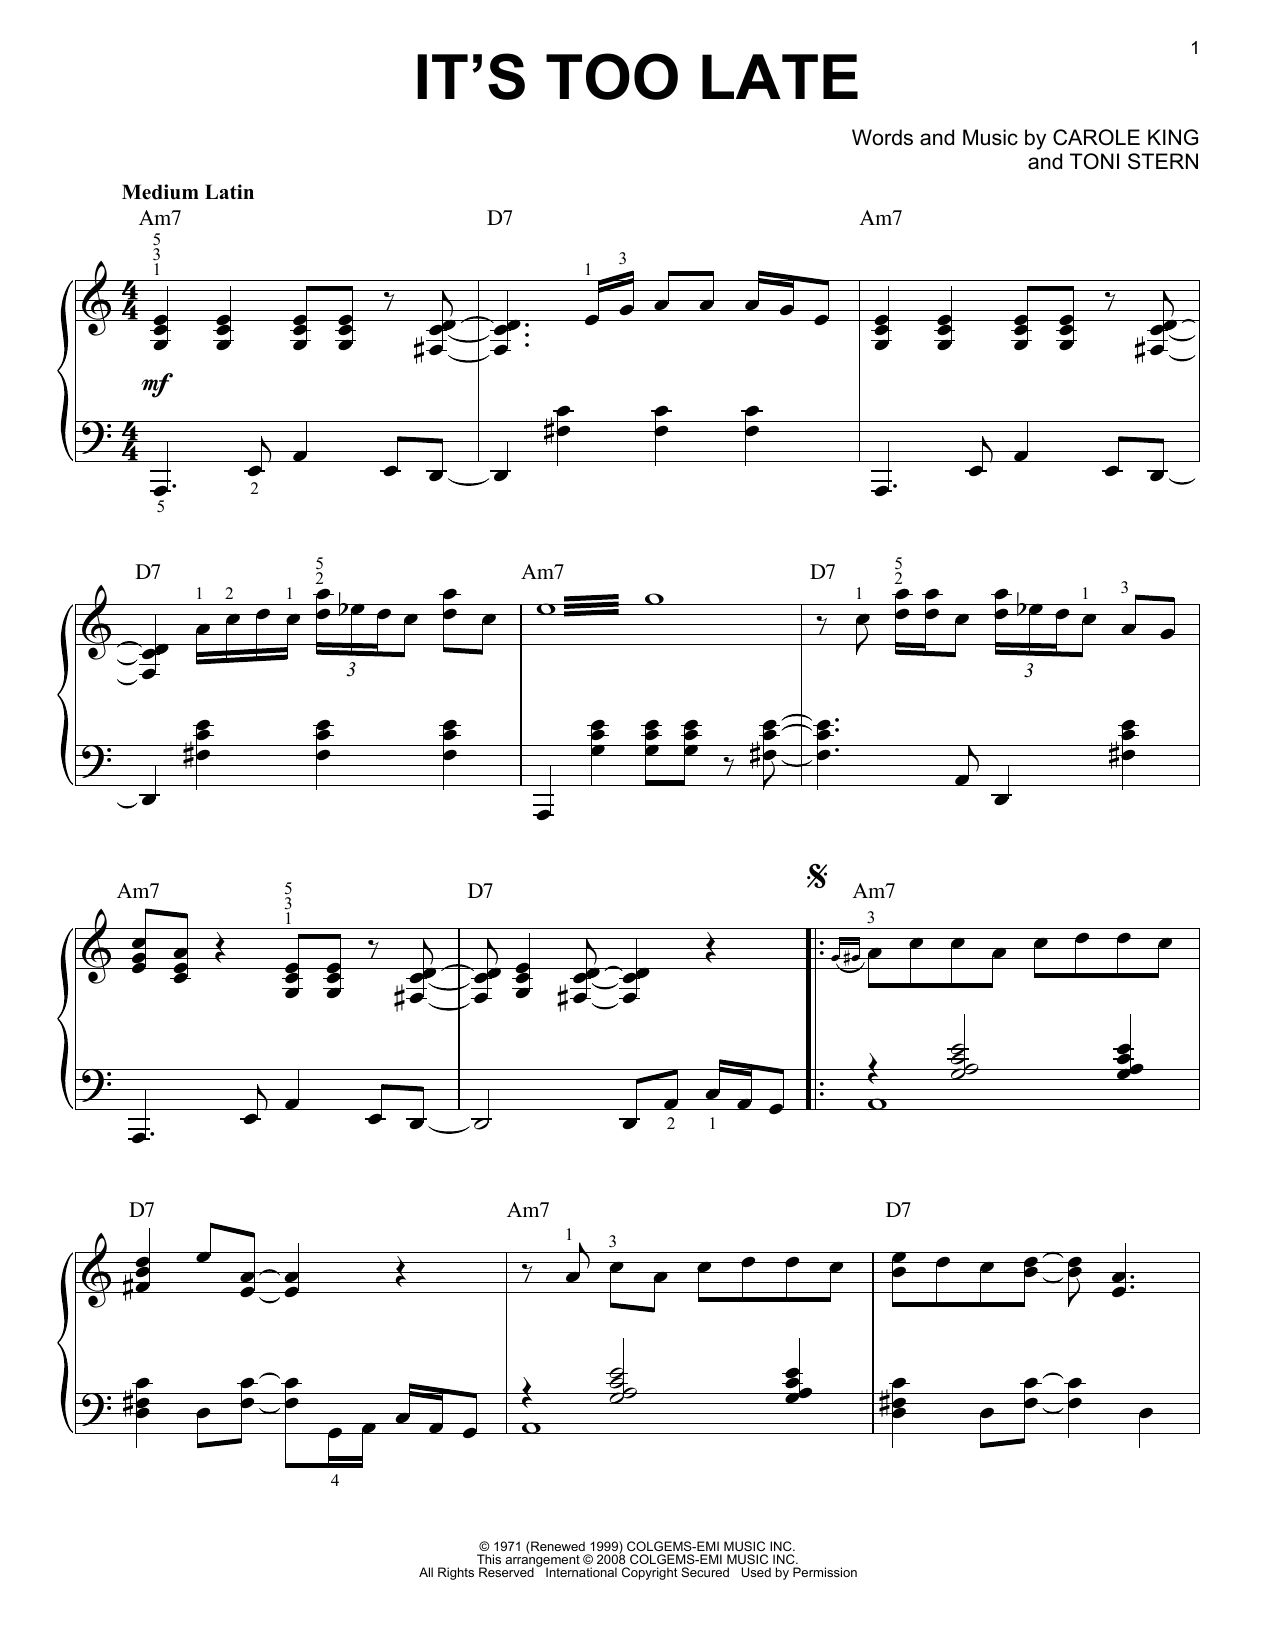 Carole King It's Too Late [Jazz version] (arr. Brent Edstrom) sheet music notes and chords. Download Printable PDF.